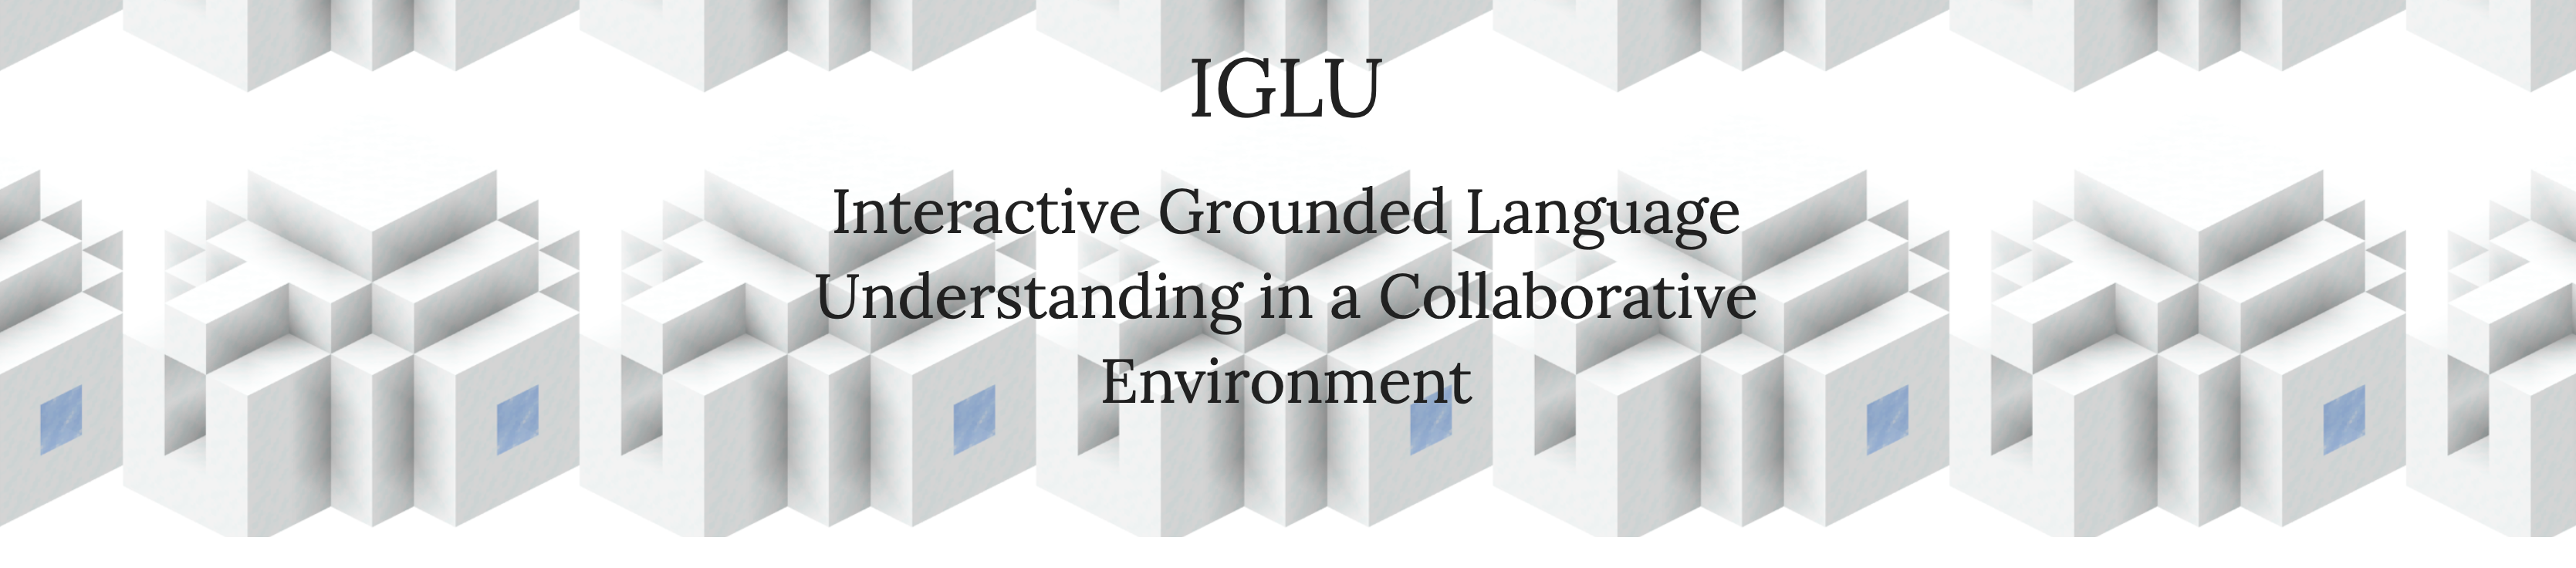 NeurIPS 2021 IGLU Contest on Interactive Grounded Language Understanding in a Collaborative Environment